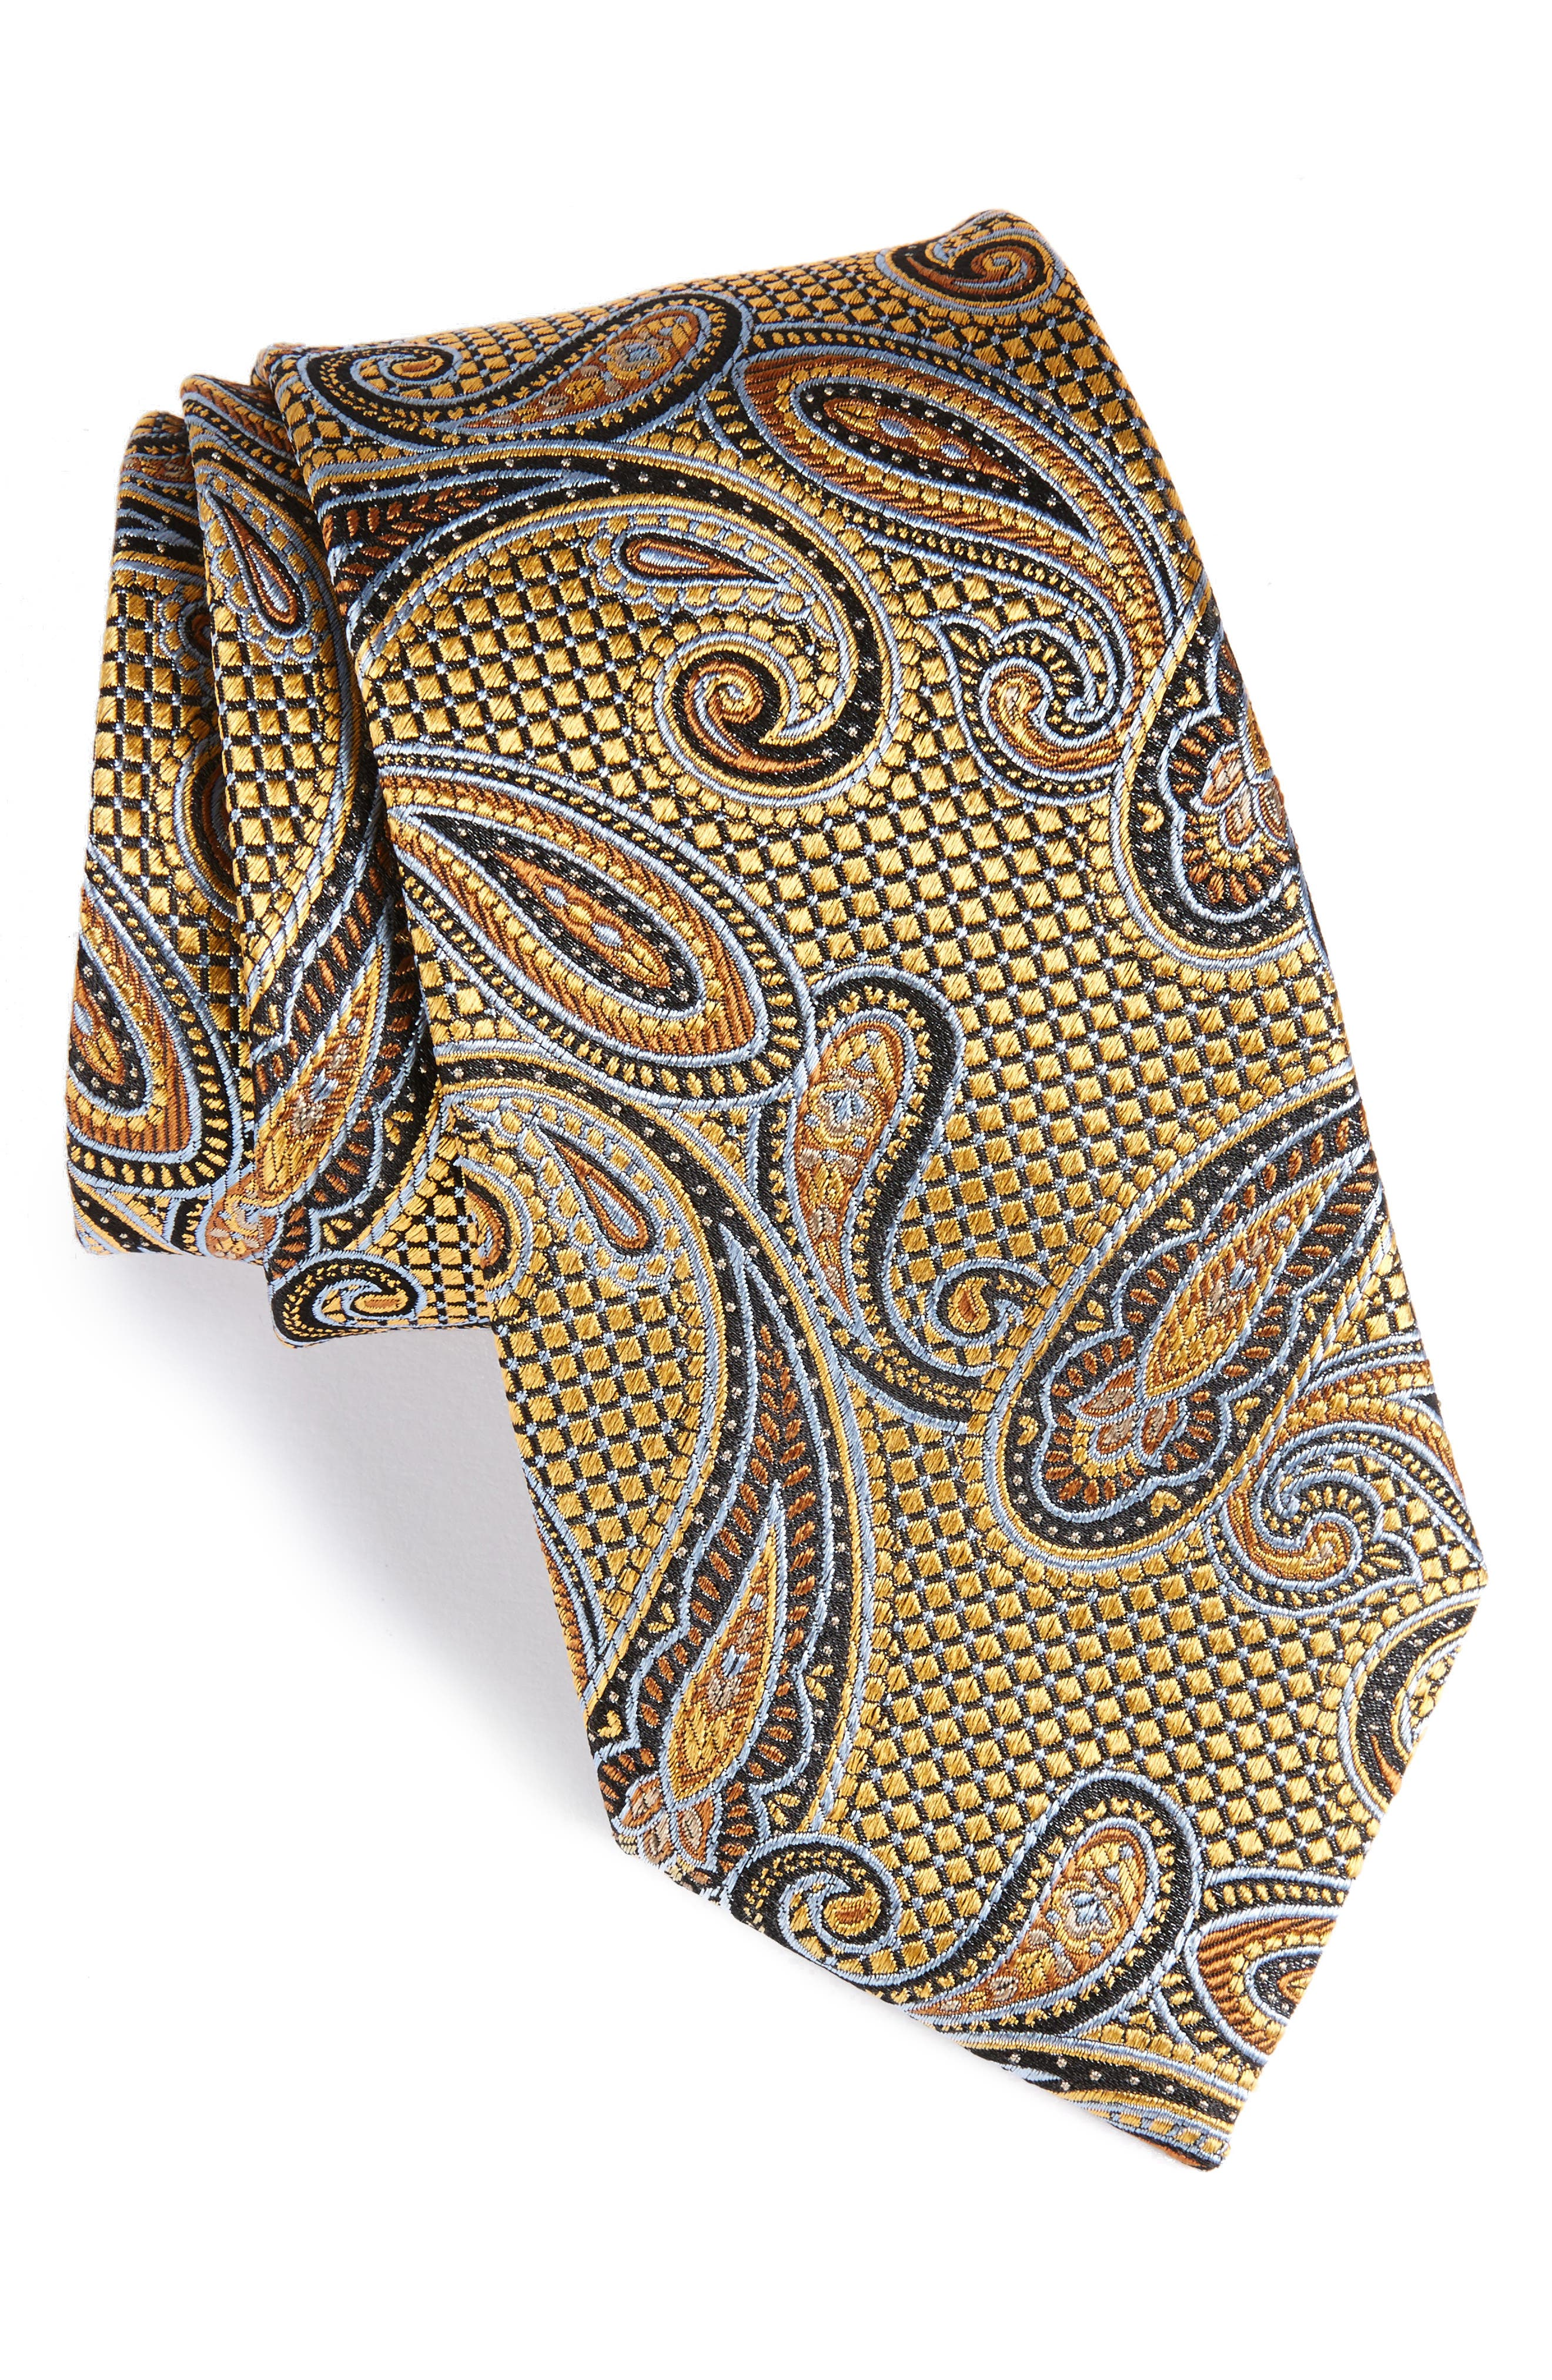 Alternate Image 1 Selected - Nordstrom Men's Shop Paisley Silk Tie